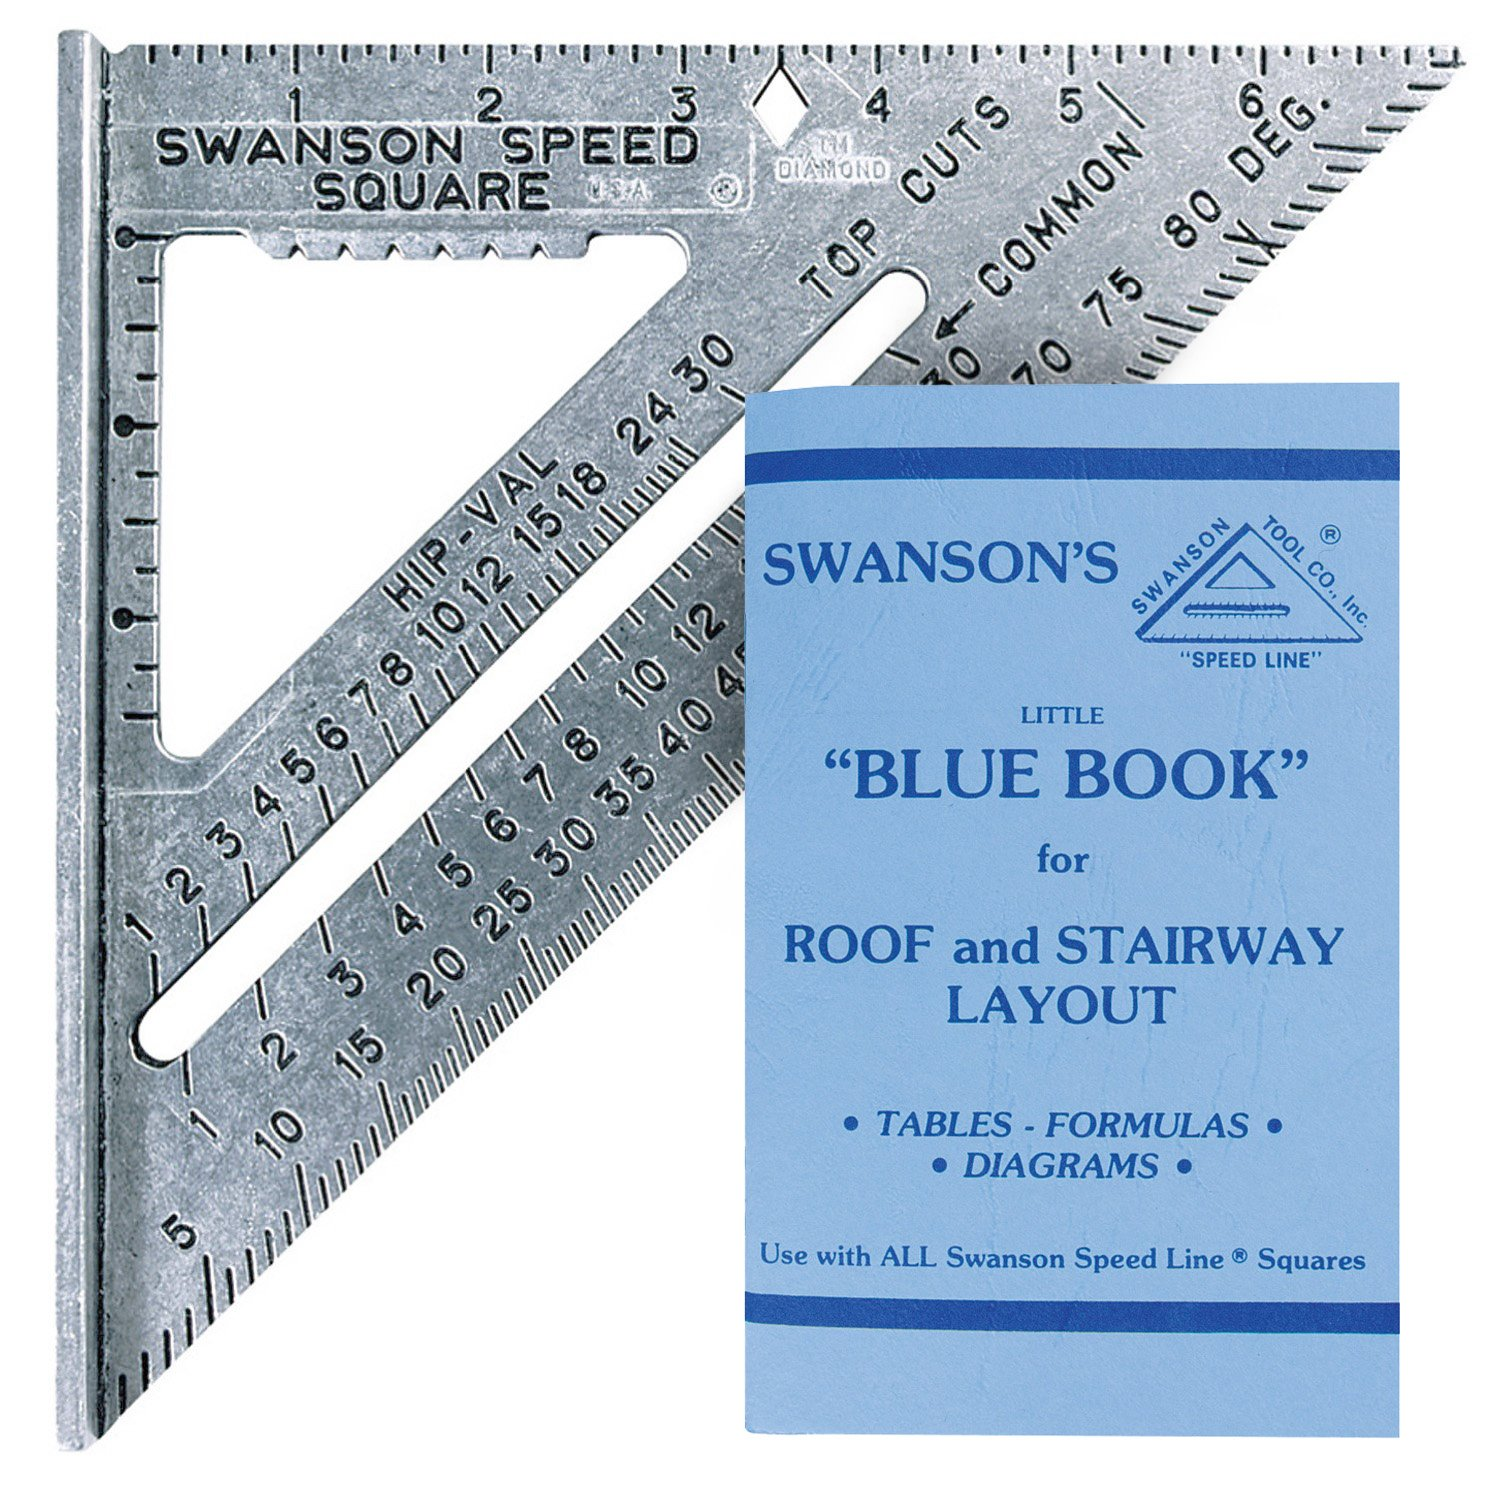 Swanson Tool S0101 7-inch Speed Square Layout with Blue Book ...